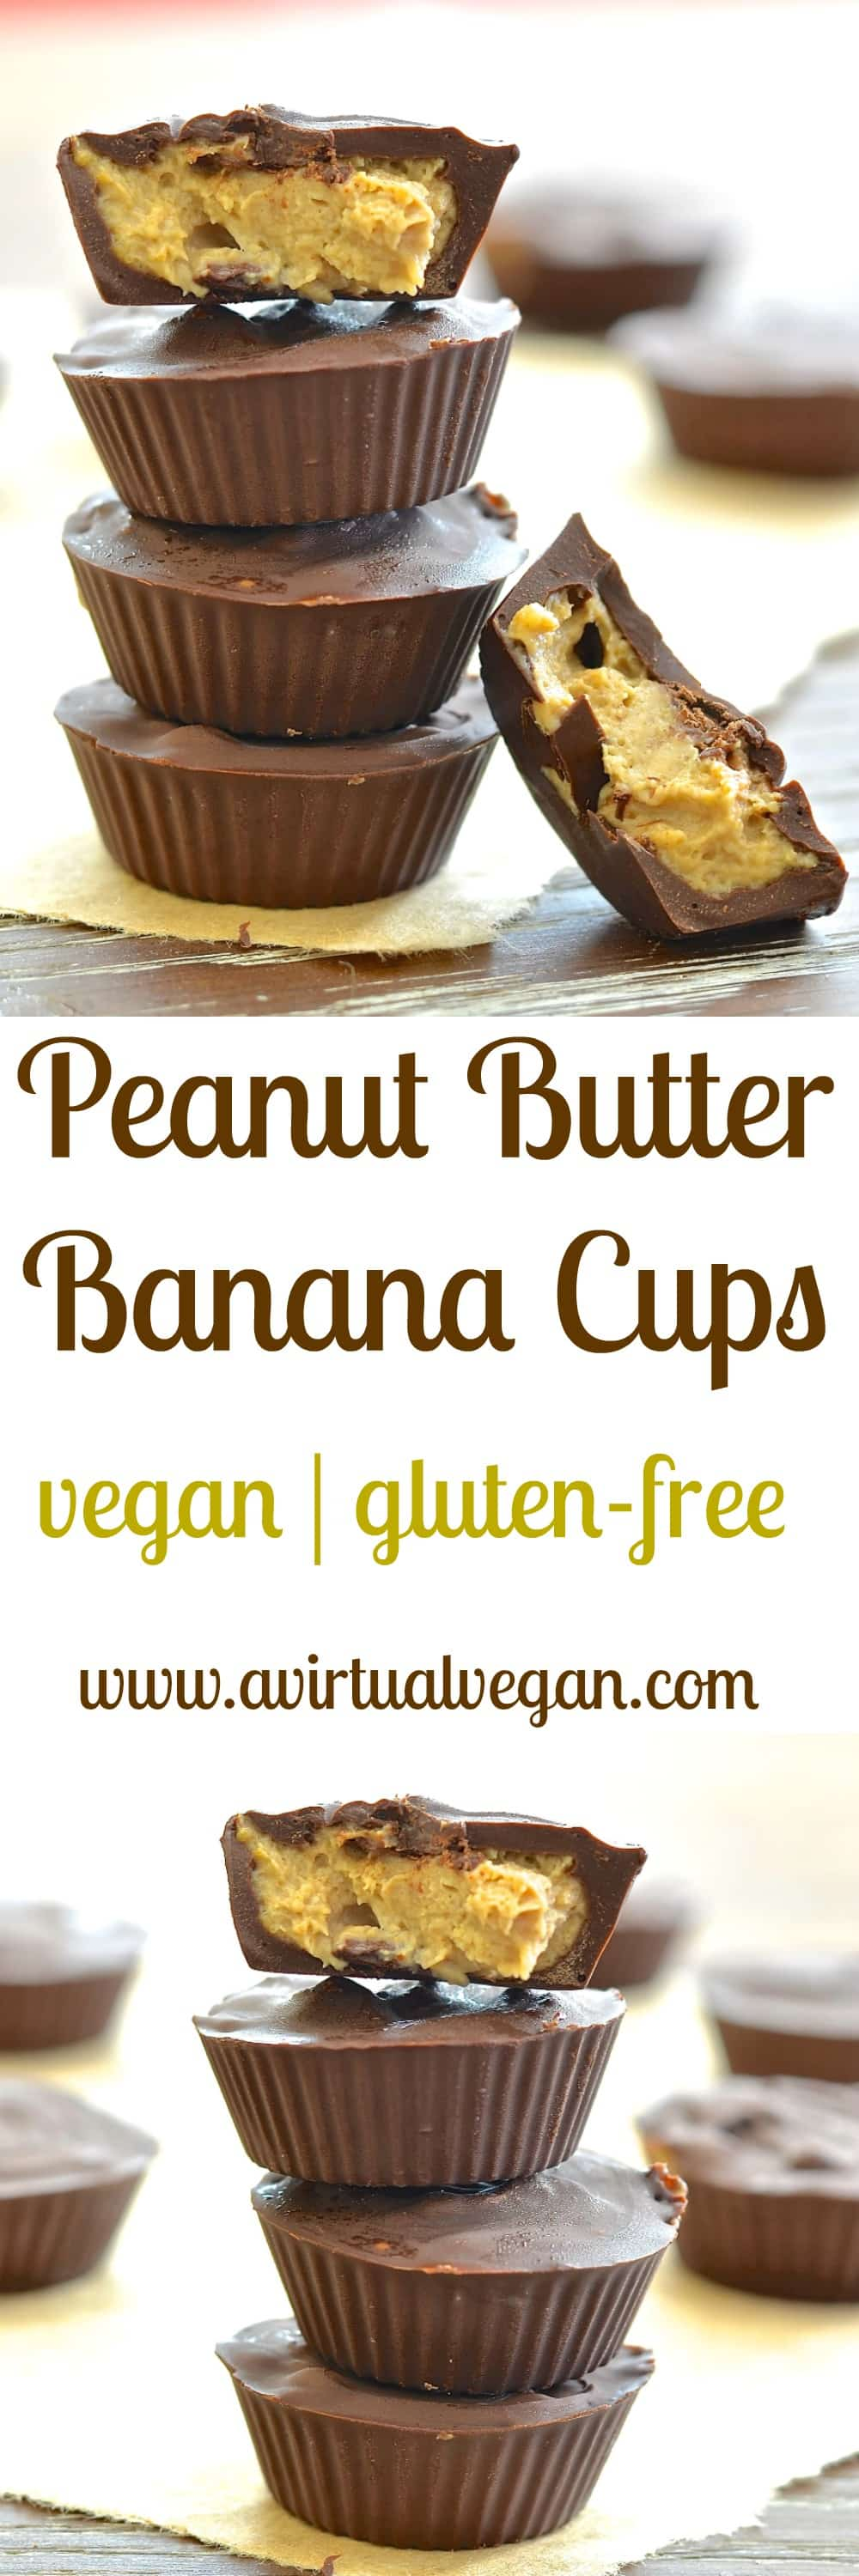 These 4 ingredients Peanut Butter Banana Cups are a lighter alternative to more traditional versions and are literally melt in your mouth delicious. Eat straight from the freezer for an ice-creamy, fudgy type filling, or leave to defrost for 5 - 10 minutes and have a super creamy, smooth and oozy melt in your mouth delicious.